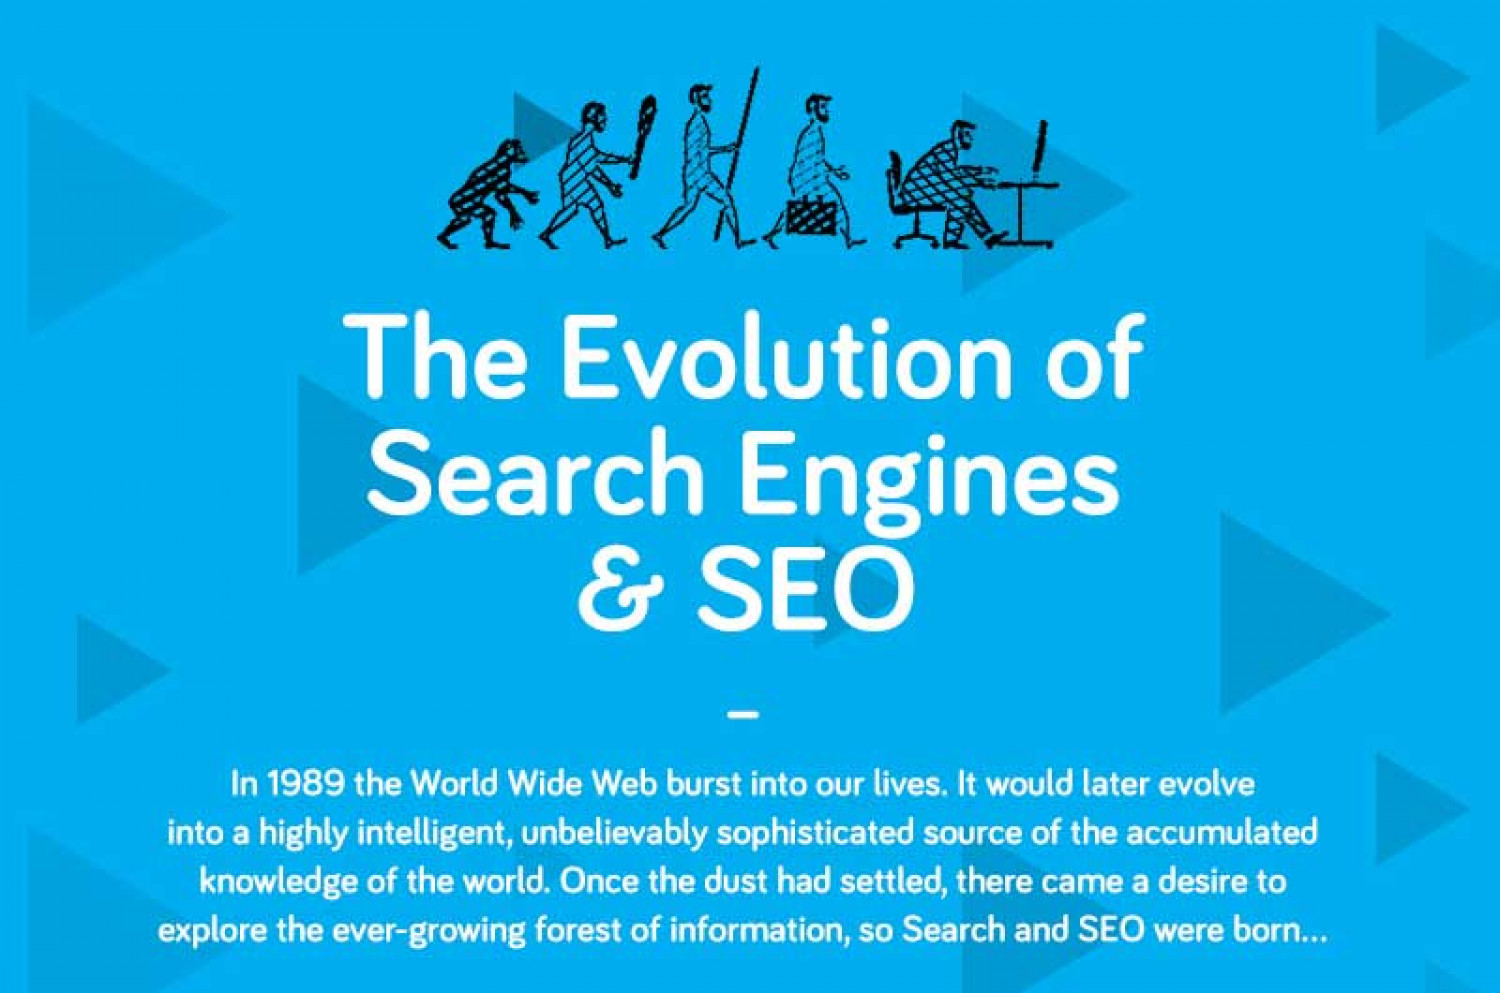 The Evolution of Search Engines & SEO Infographic